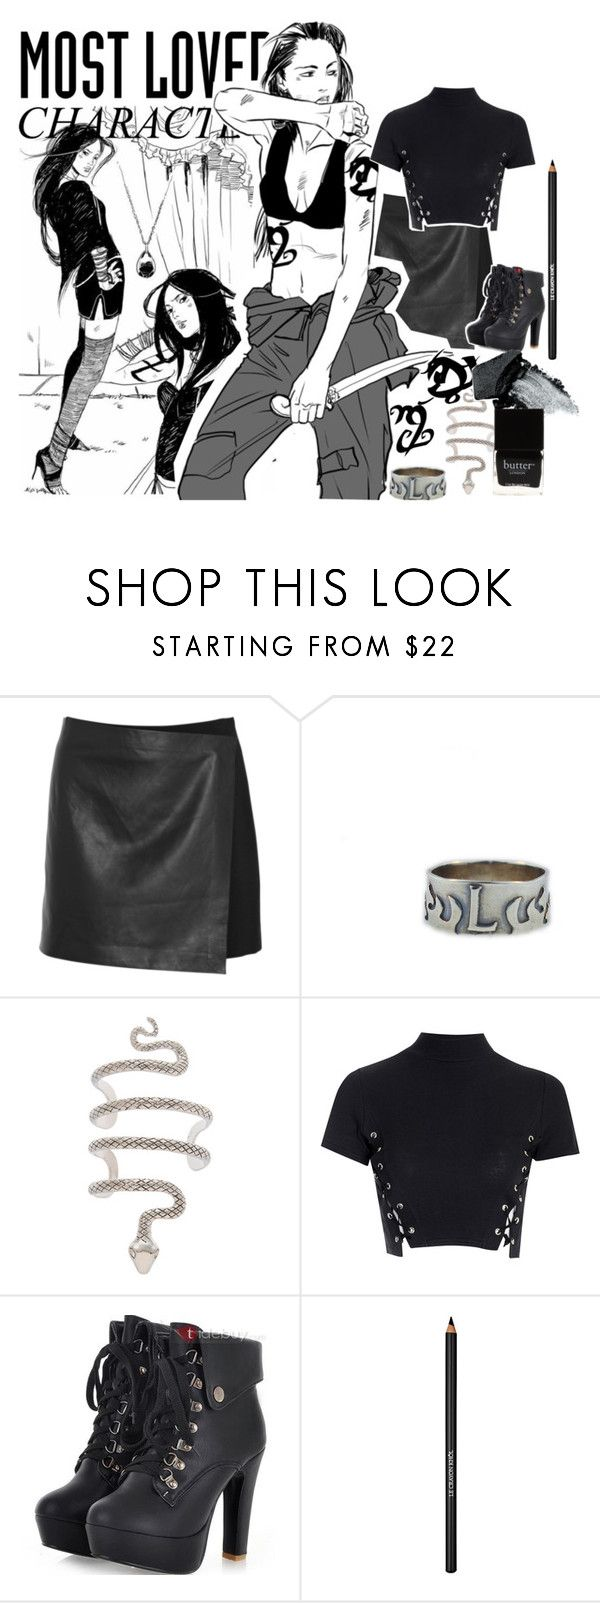 """""""Isabelle Lightwood Most Loved Character"""" by arya-starks ❤ liked on Polyvore featuring Theory, Hot Topic, Rune NYC, Glamorous, Gorgeous Cosmetics, Lancôme, Butter London, shadowhunters, isabellelightwood and MostLovedCharacter"""